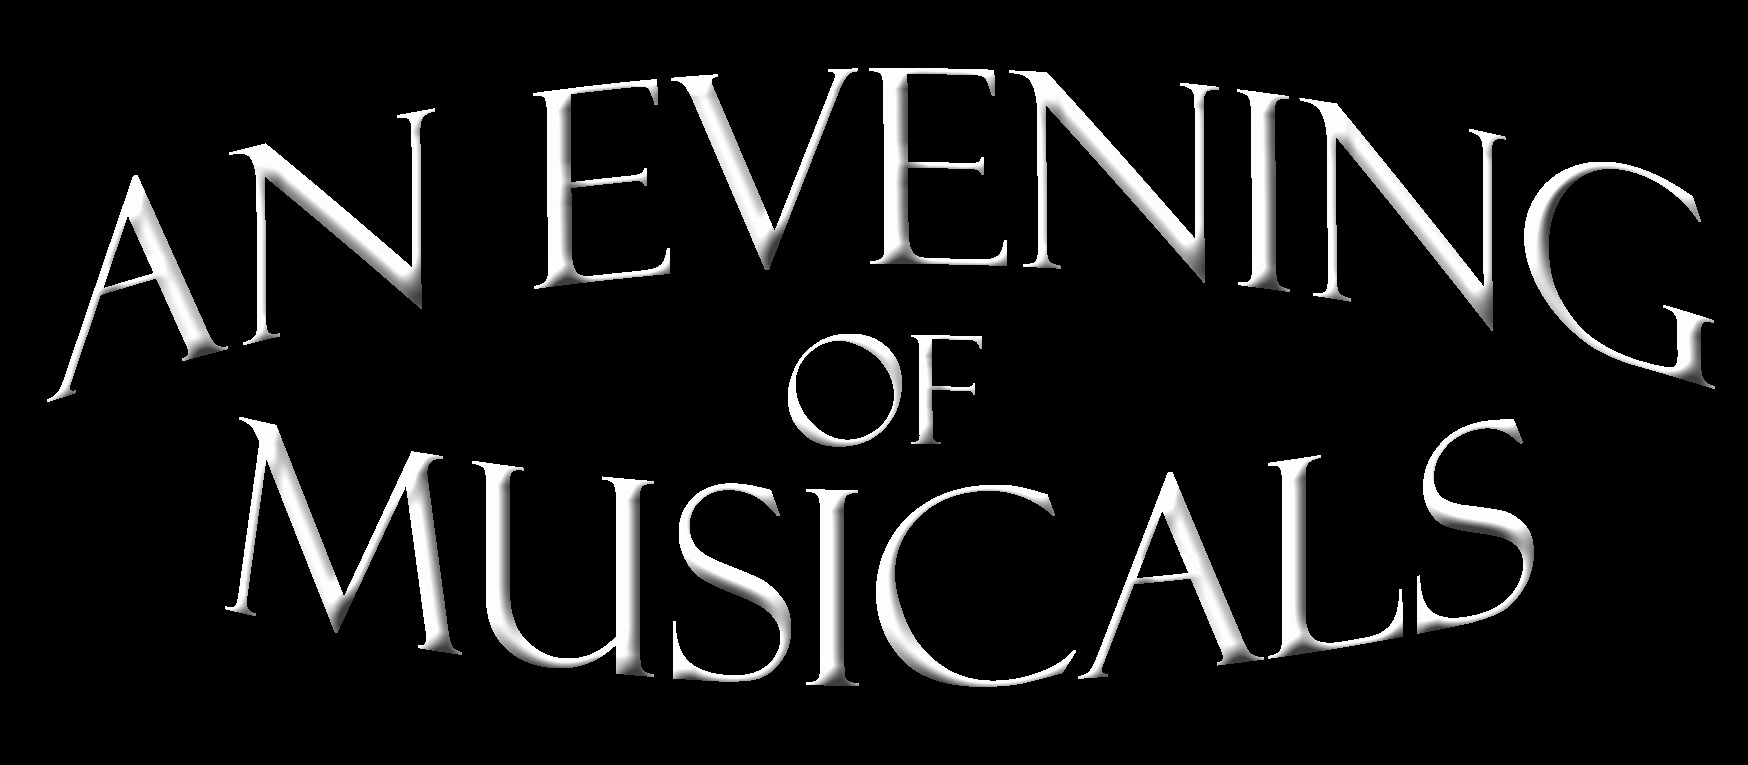 An Evening of Musicals banner image